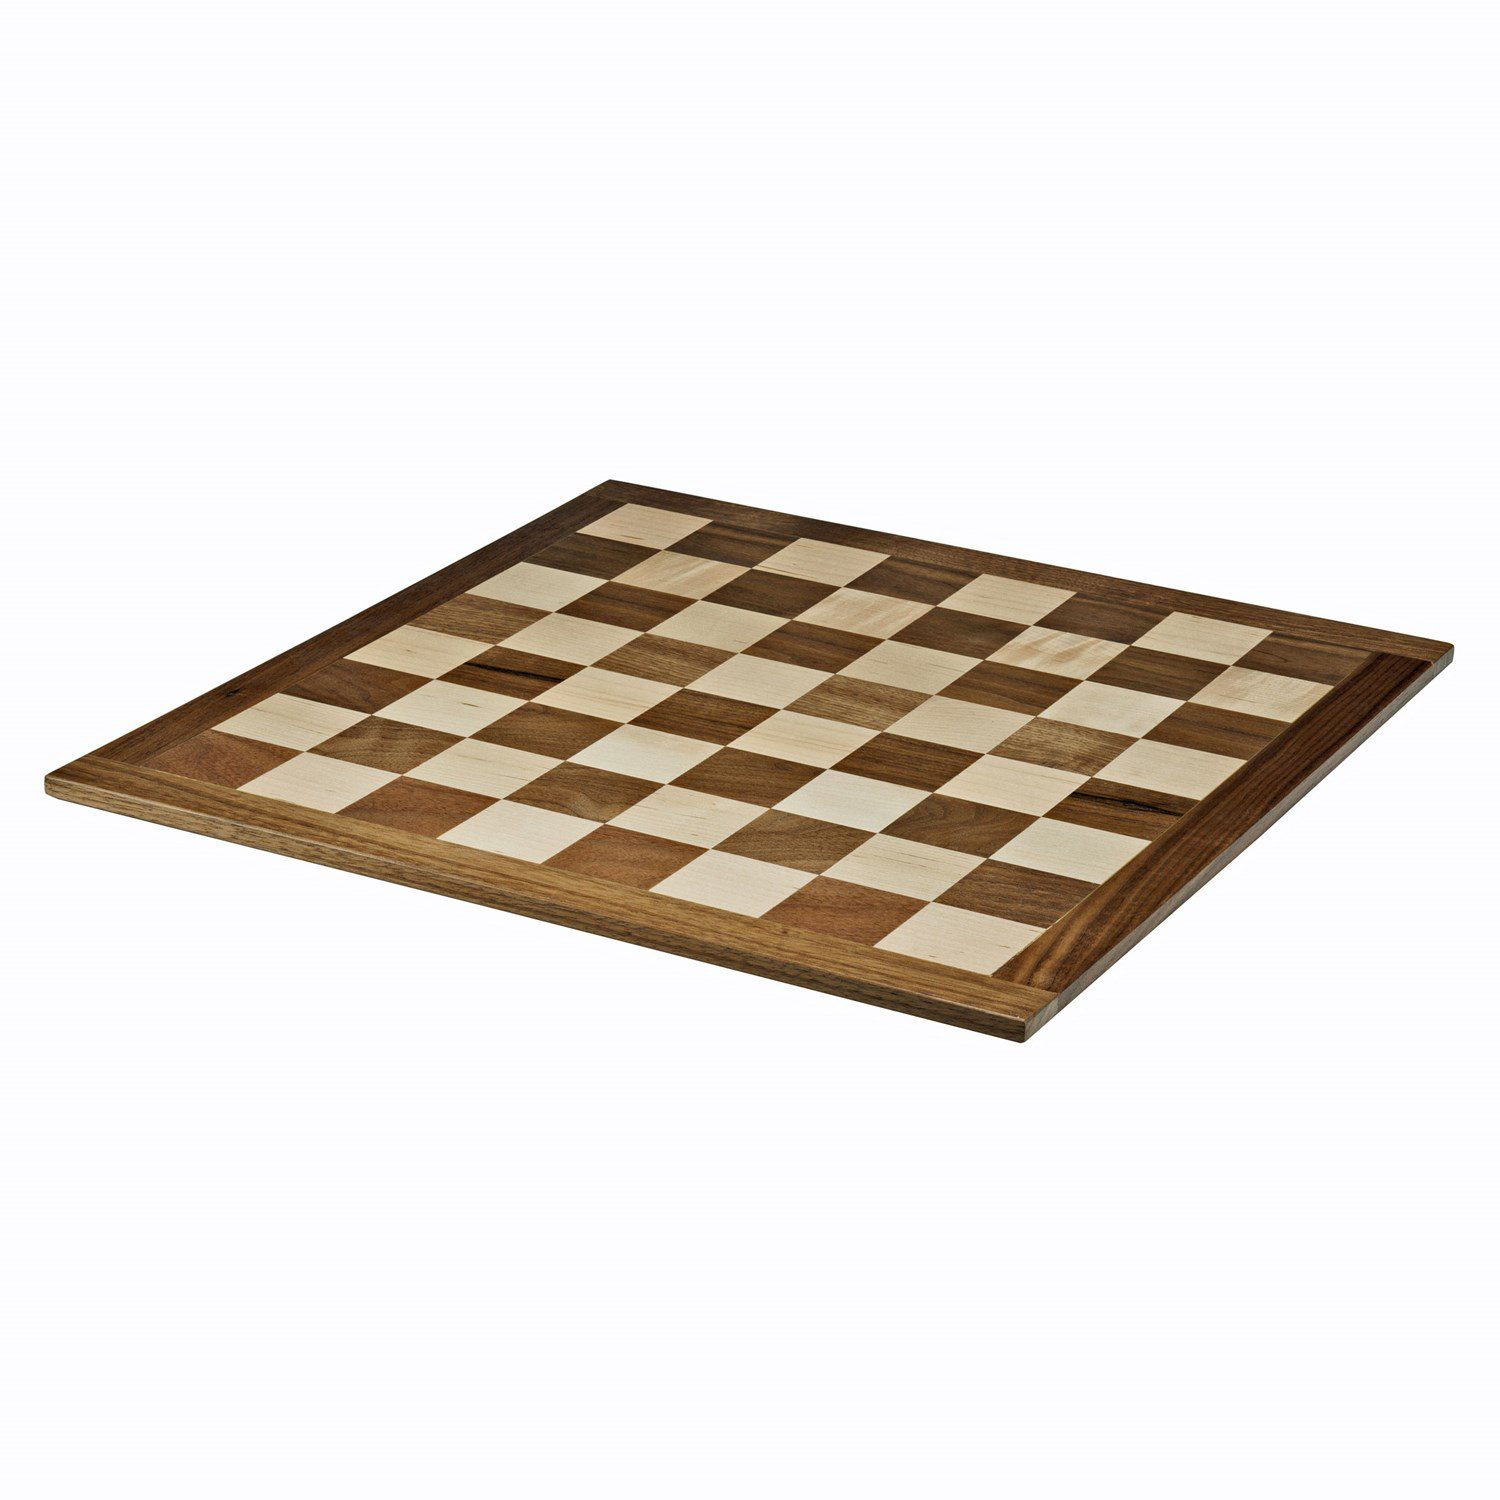 CHESS BOARD 069420